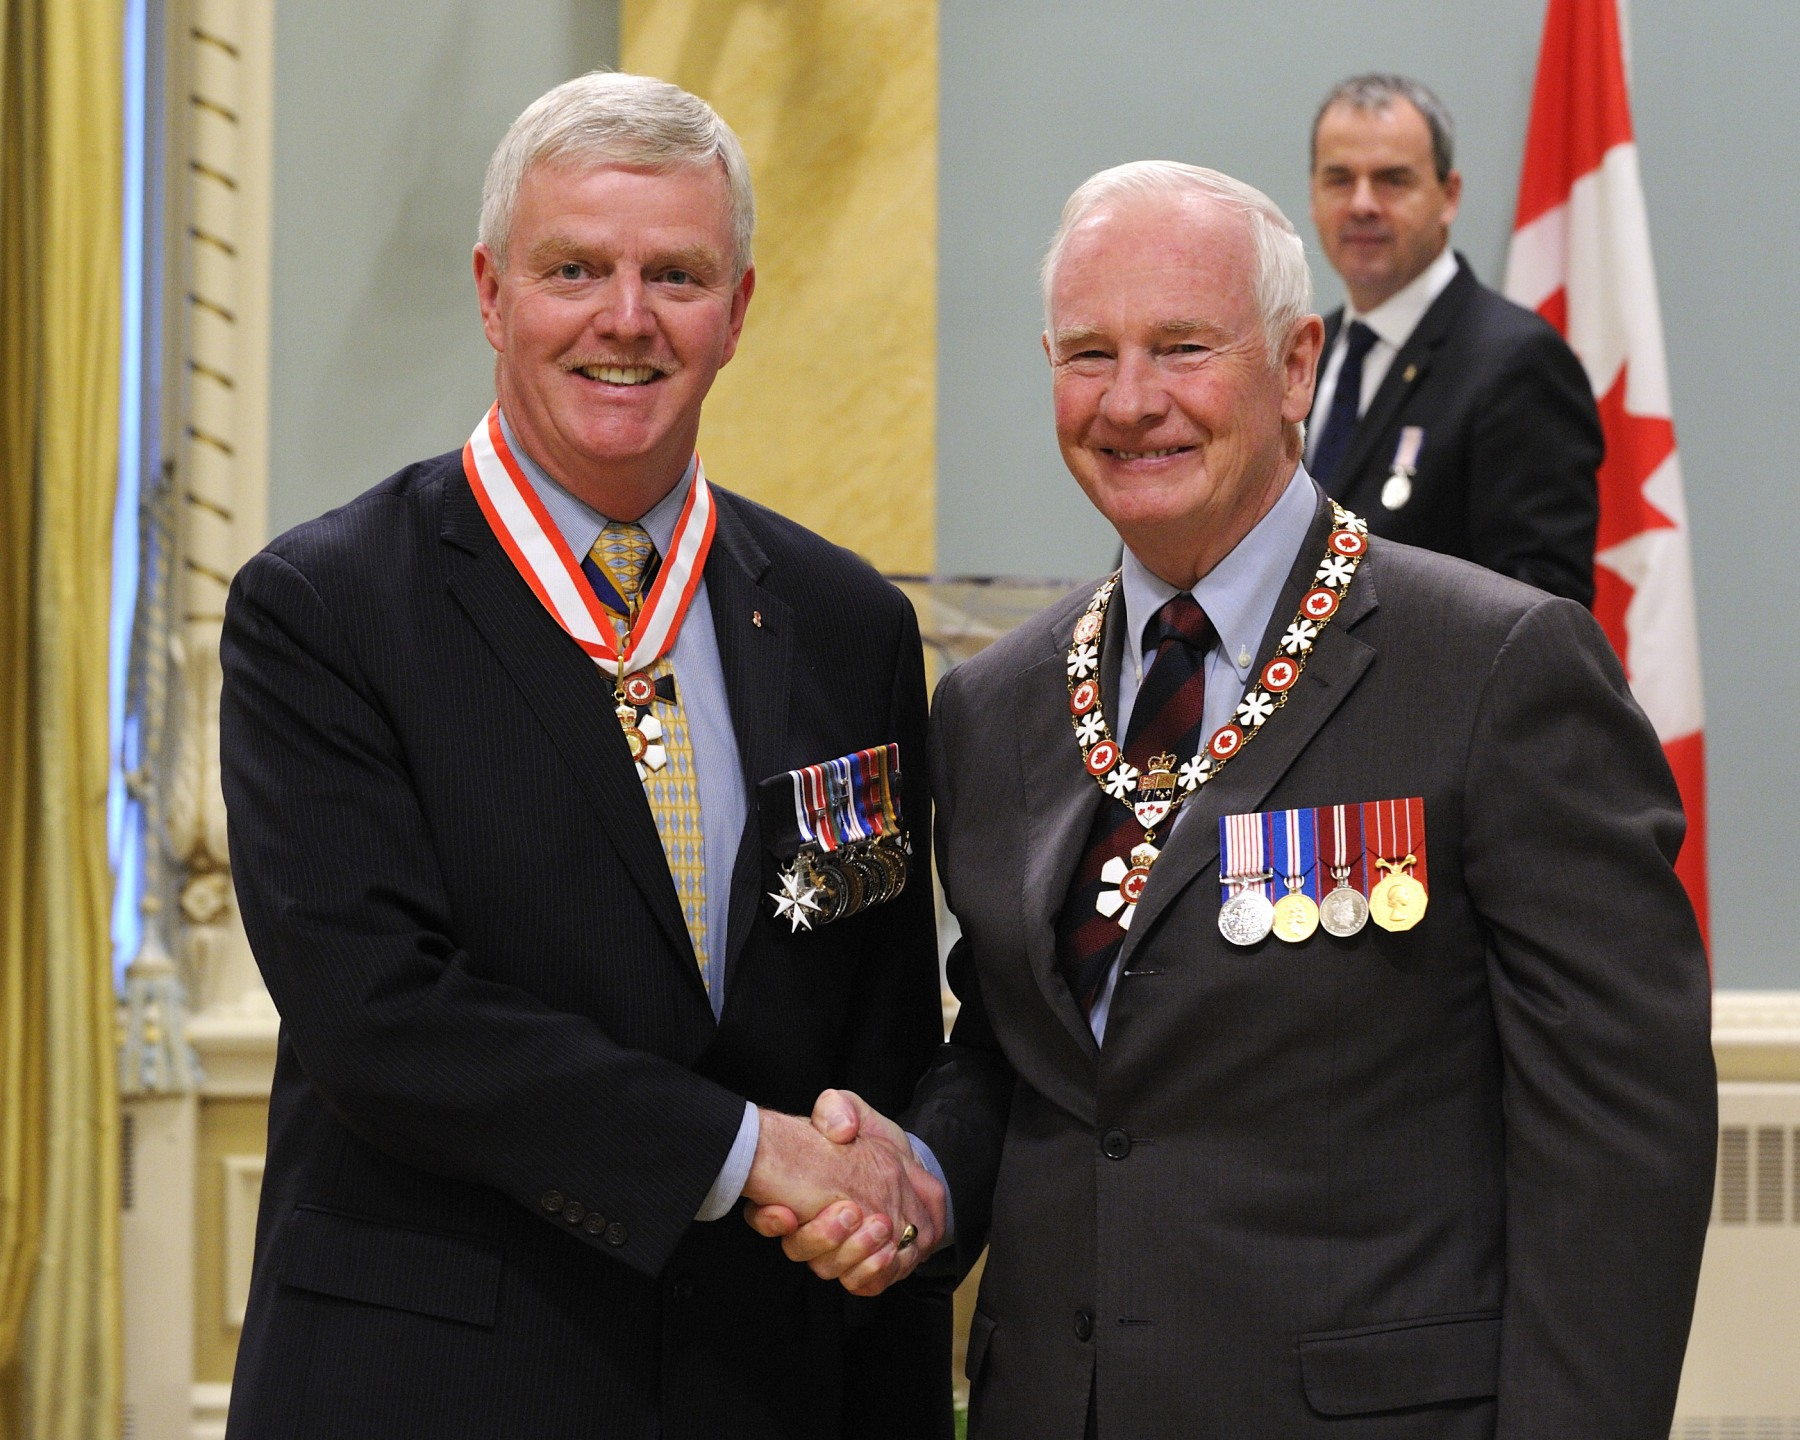 General Rick J. Hillier, O.C., C.M.M., M.S.C., C.D. (Ret'd) (Ottawa, Ontario) served his nation with distinction for more than 35 years. As an army commander, he provided strong leadership both at home, during domestic challenges such as the 1998 ice storm, and abroad, leading multinational forces in Bosnia-Herzegovina and in Afghanistan. As chief of the Defence Staff, he embodied the values of duty and honour, inspiring pride in our military. His leadership continues in his role as chancellor of Memorial University of Newfoundland.